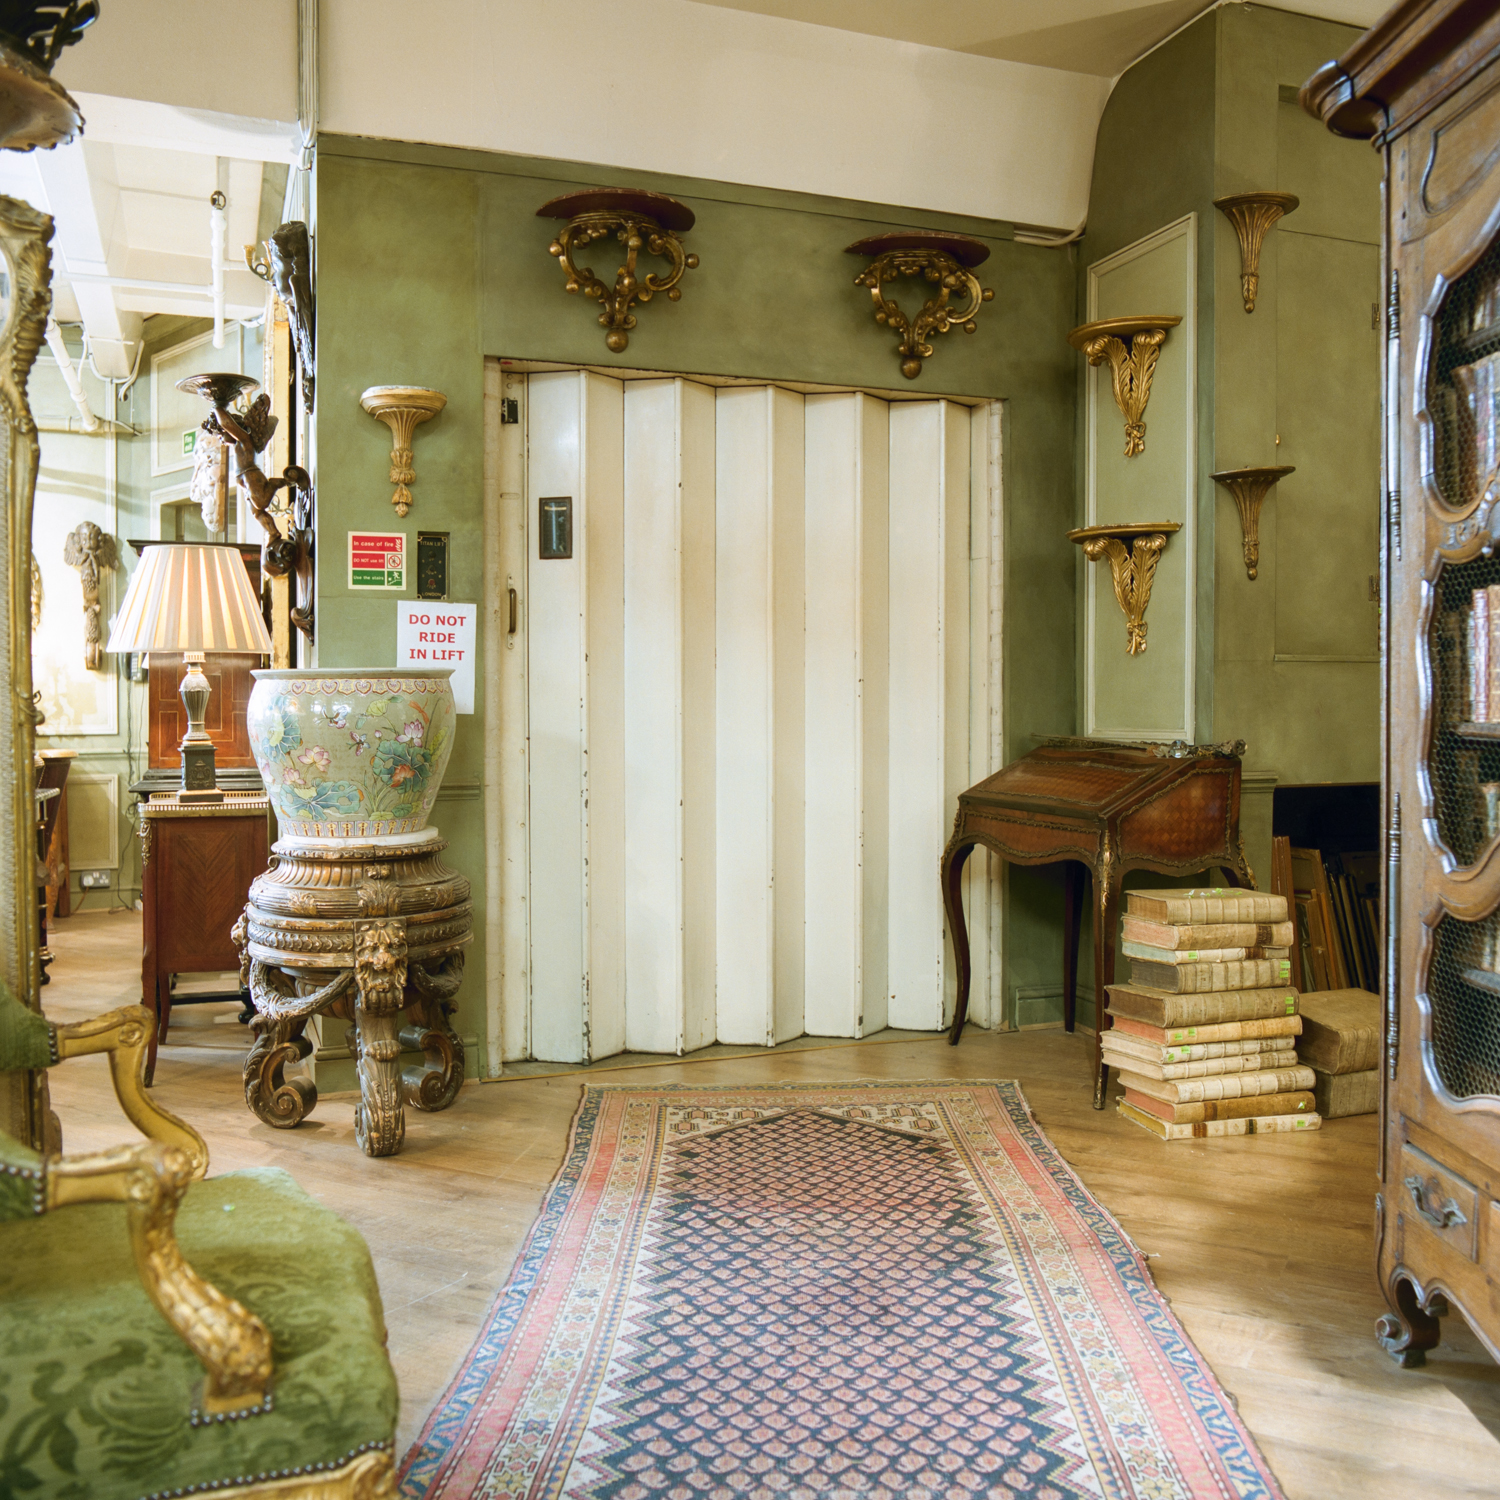 Moultings, chintz and ceramics from the 17th and 18th century feature in this corner. Note the pile of books on the floor.